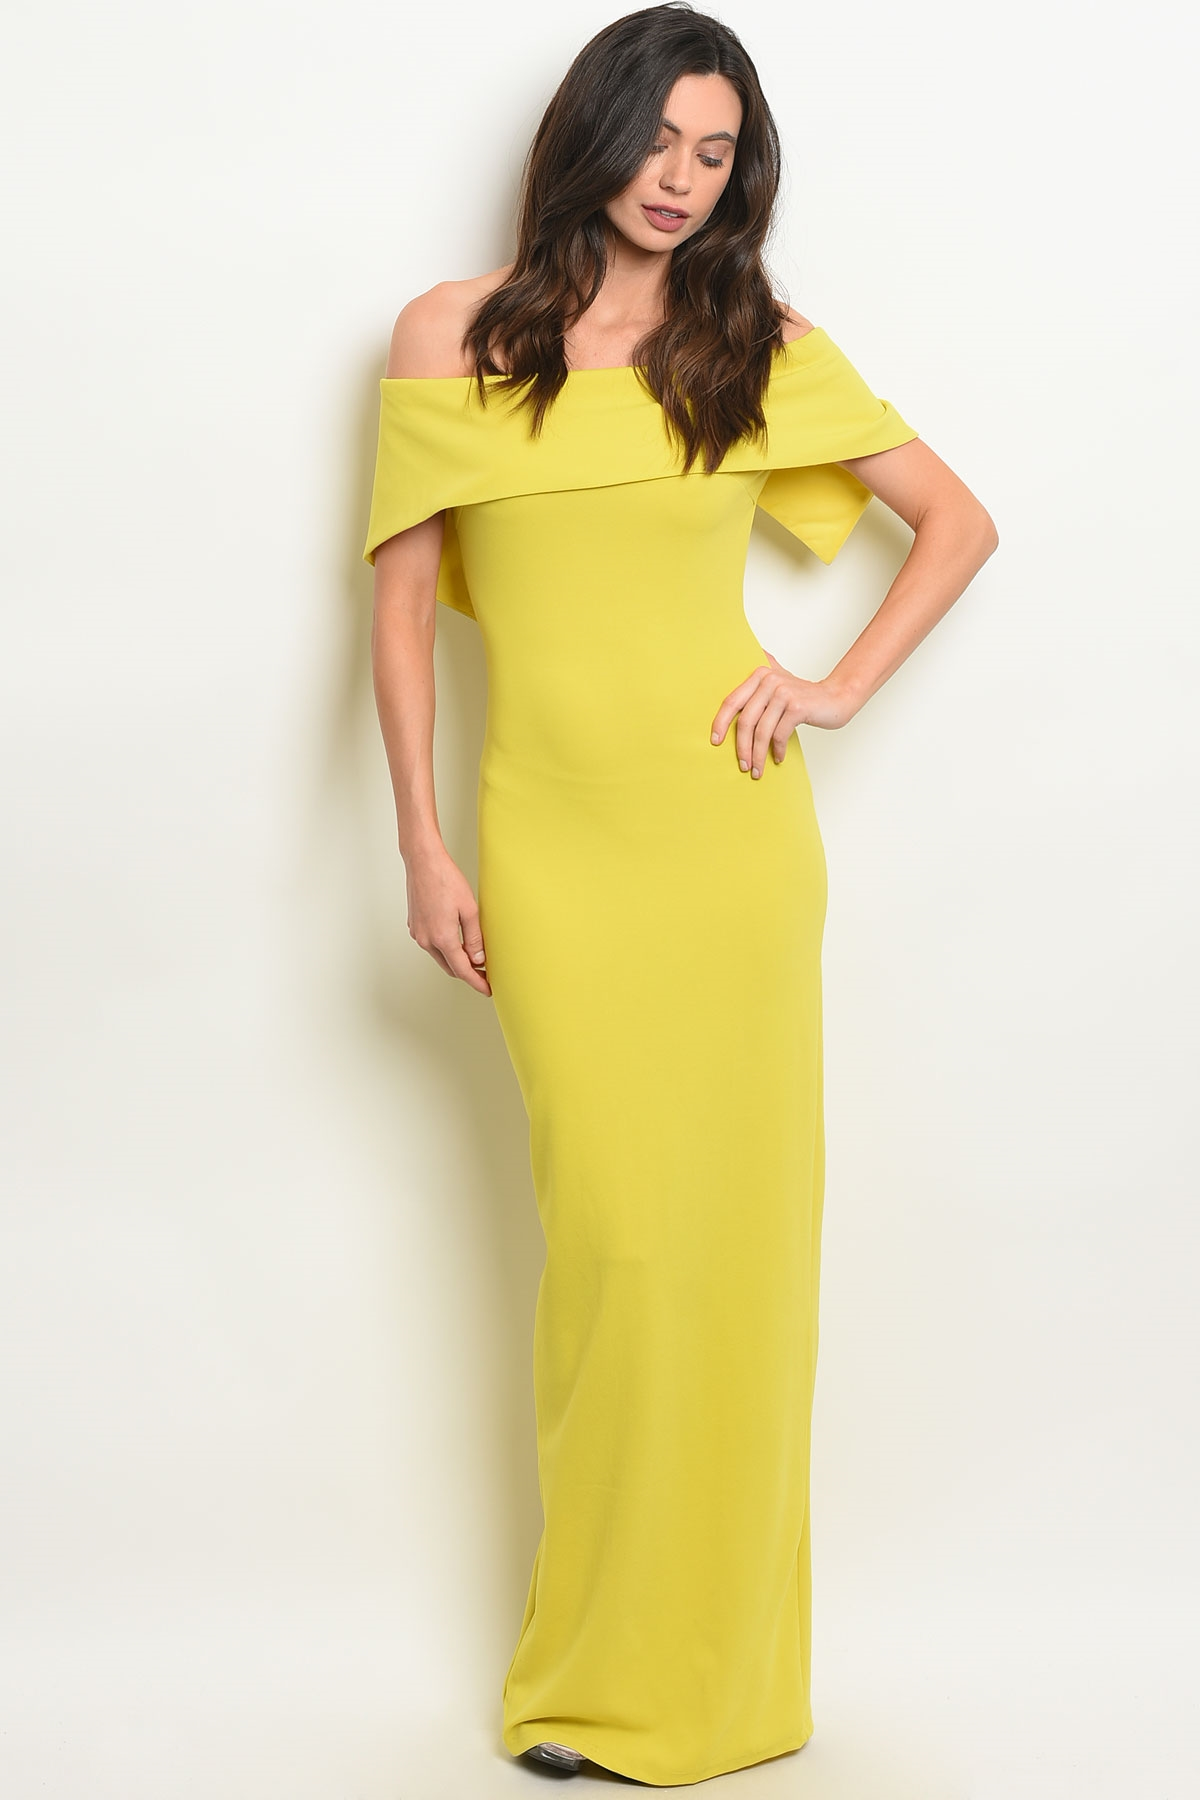 852ff3729b2d ... YELLOW OFF SHOULDER DRESS 2-2-2 · Larger Photo ...